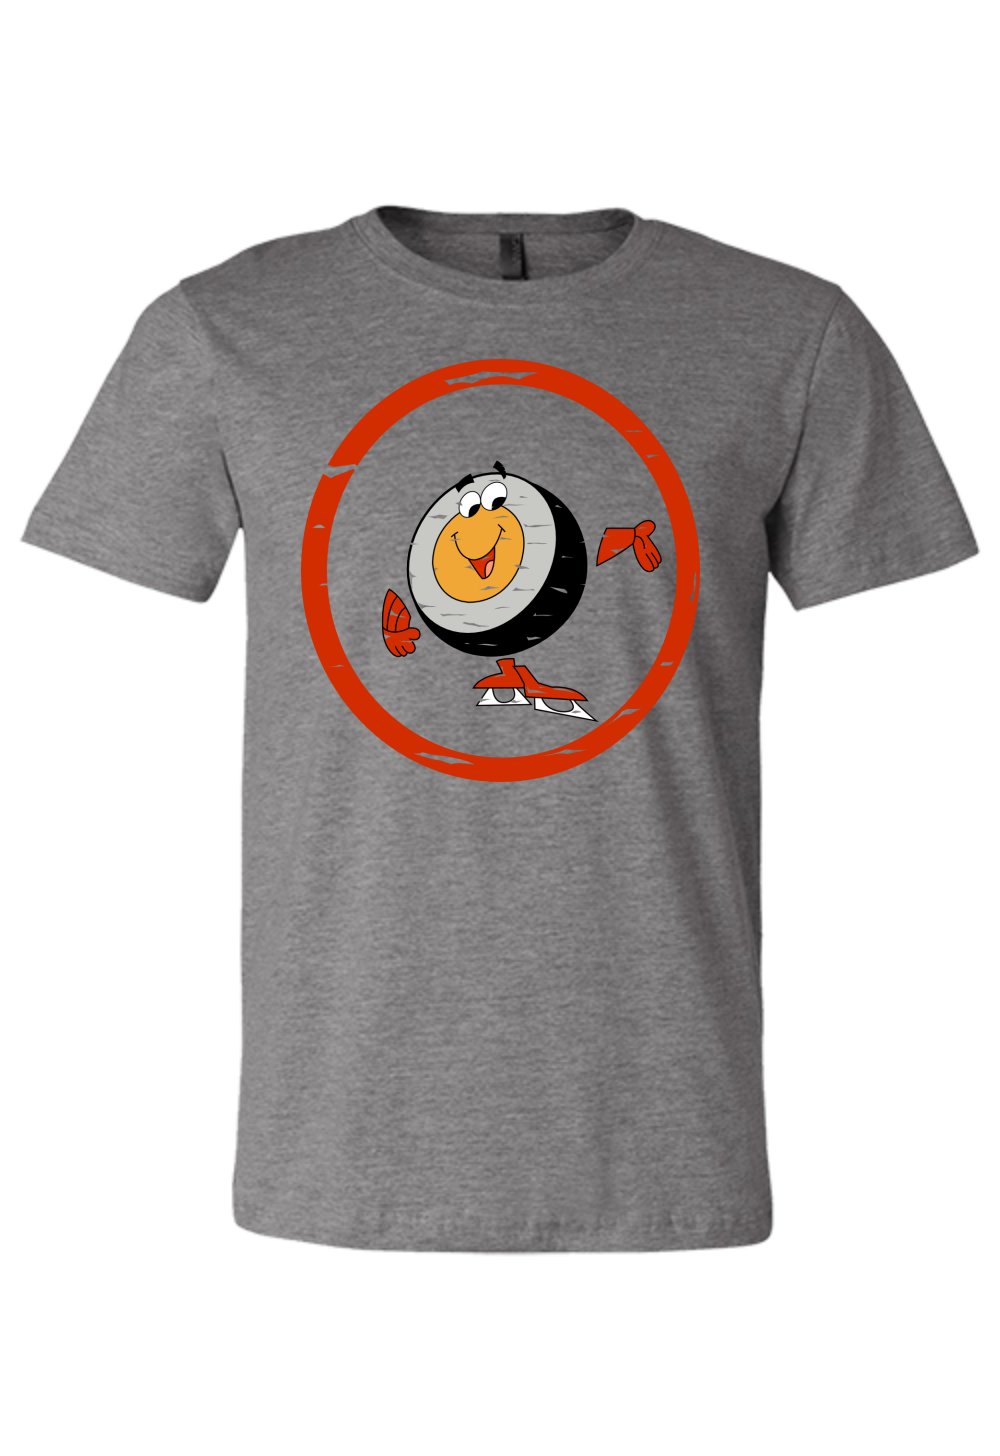 Retro Peter Puck T-Shirt Premium Tee - PhillyFandom Premium Tee - Shirts PhillyFandom Philly Sports Tees